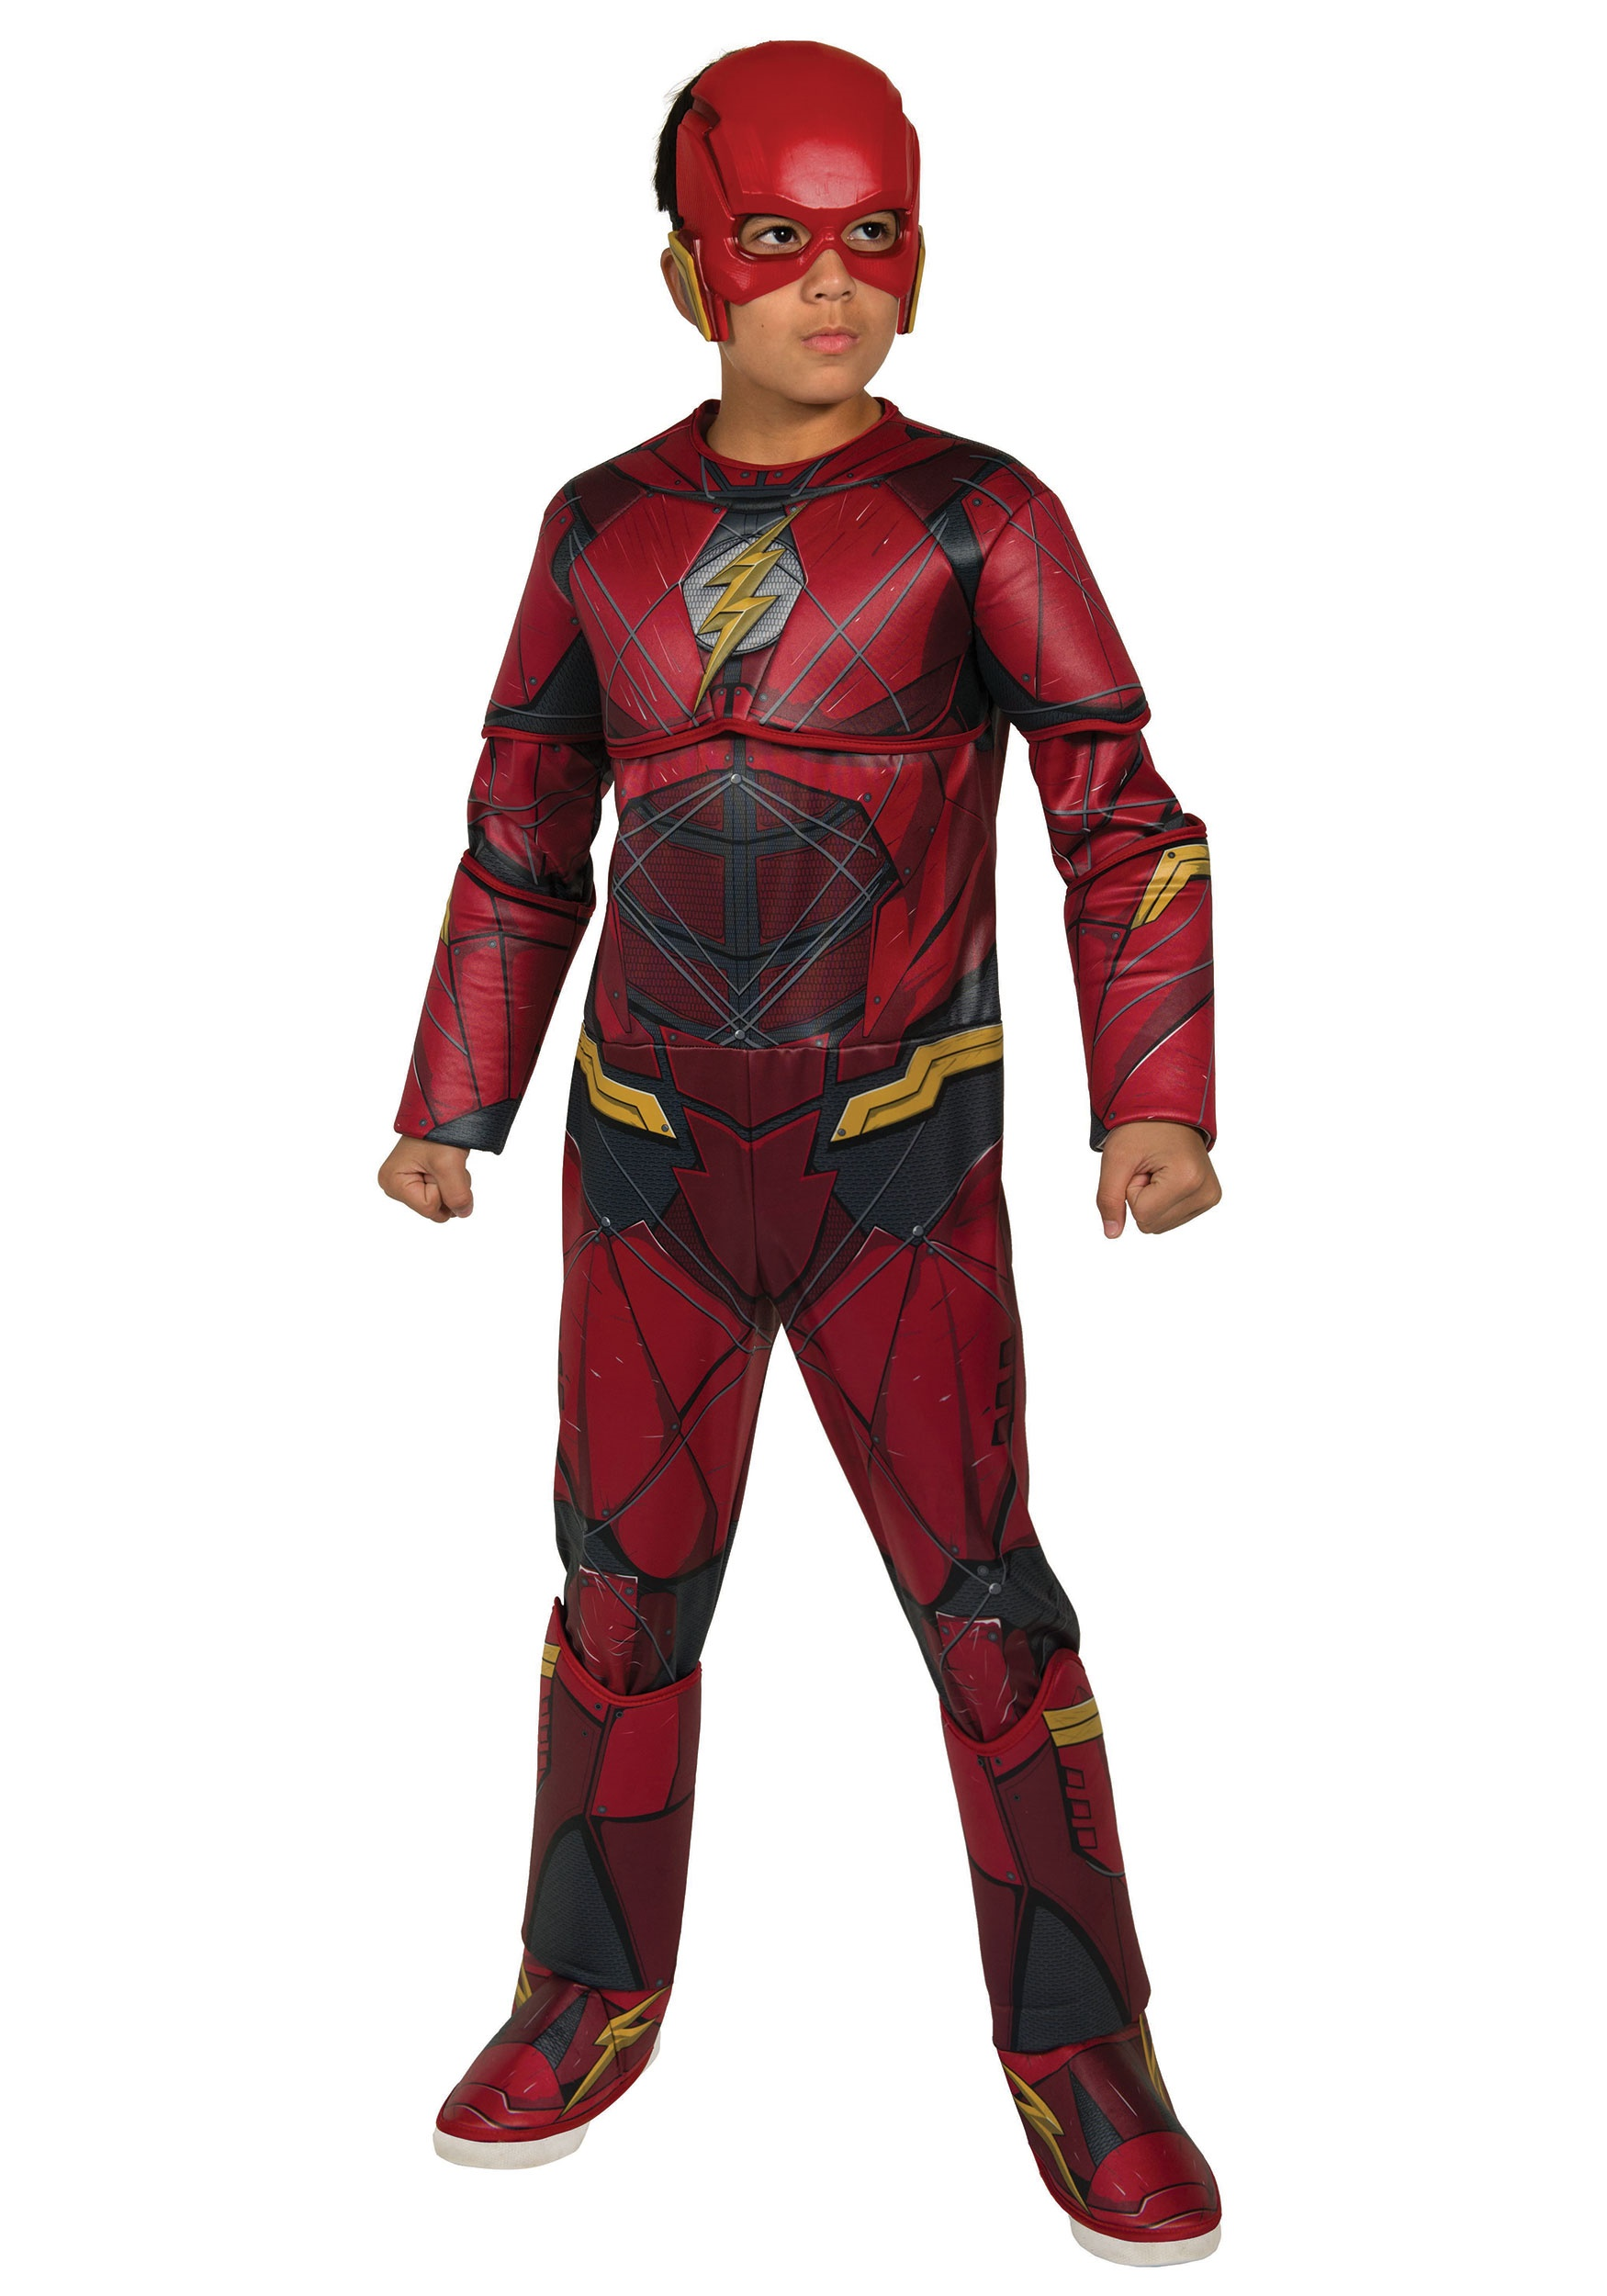 4fc9d3265ceaa Justice League Deluxe Flash Costume for Boys